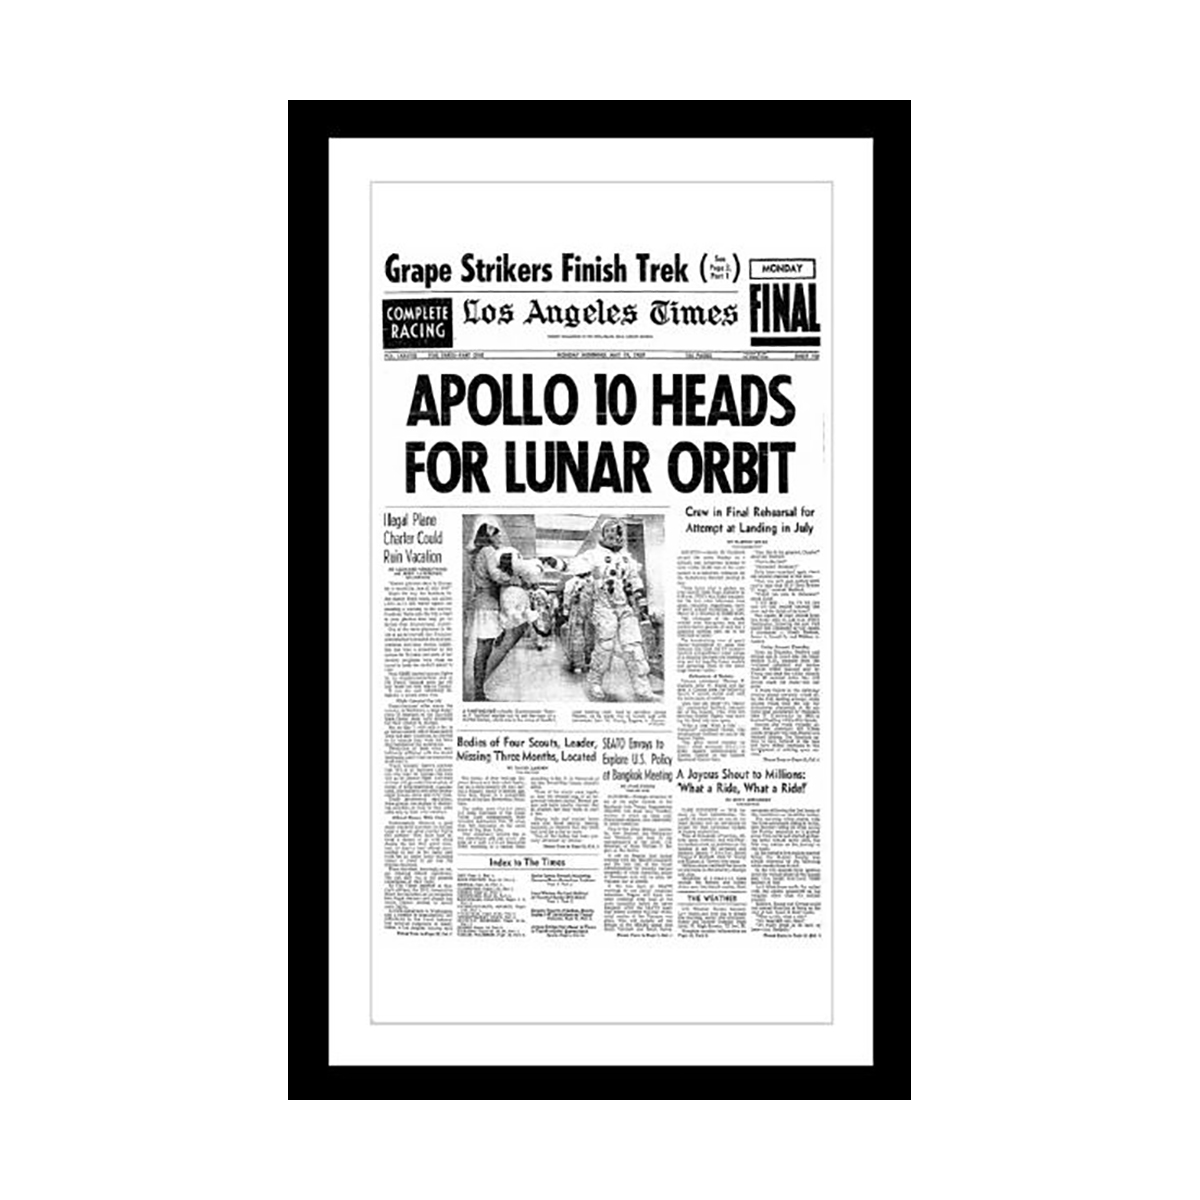 Los Angeles Times: Los Angeles Times Page Print